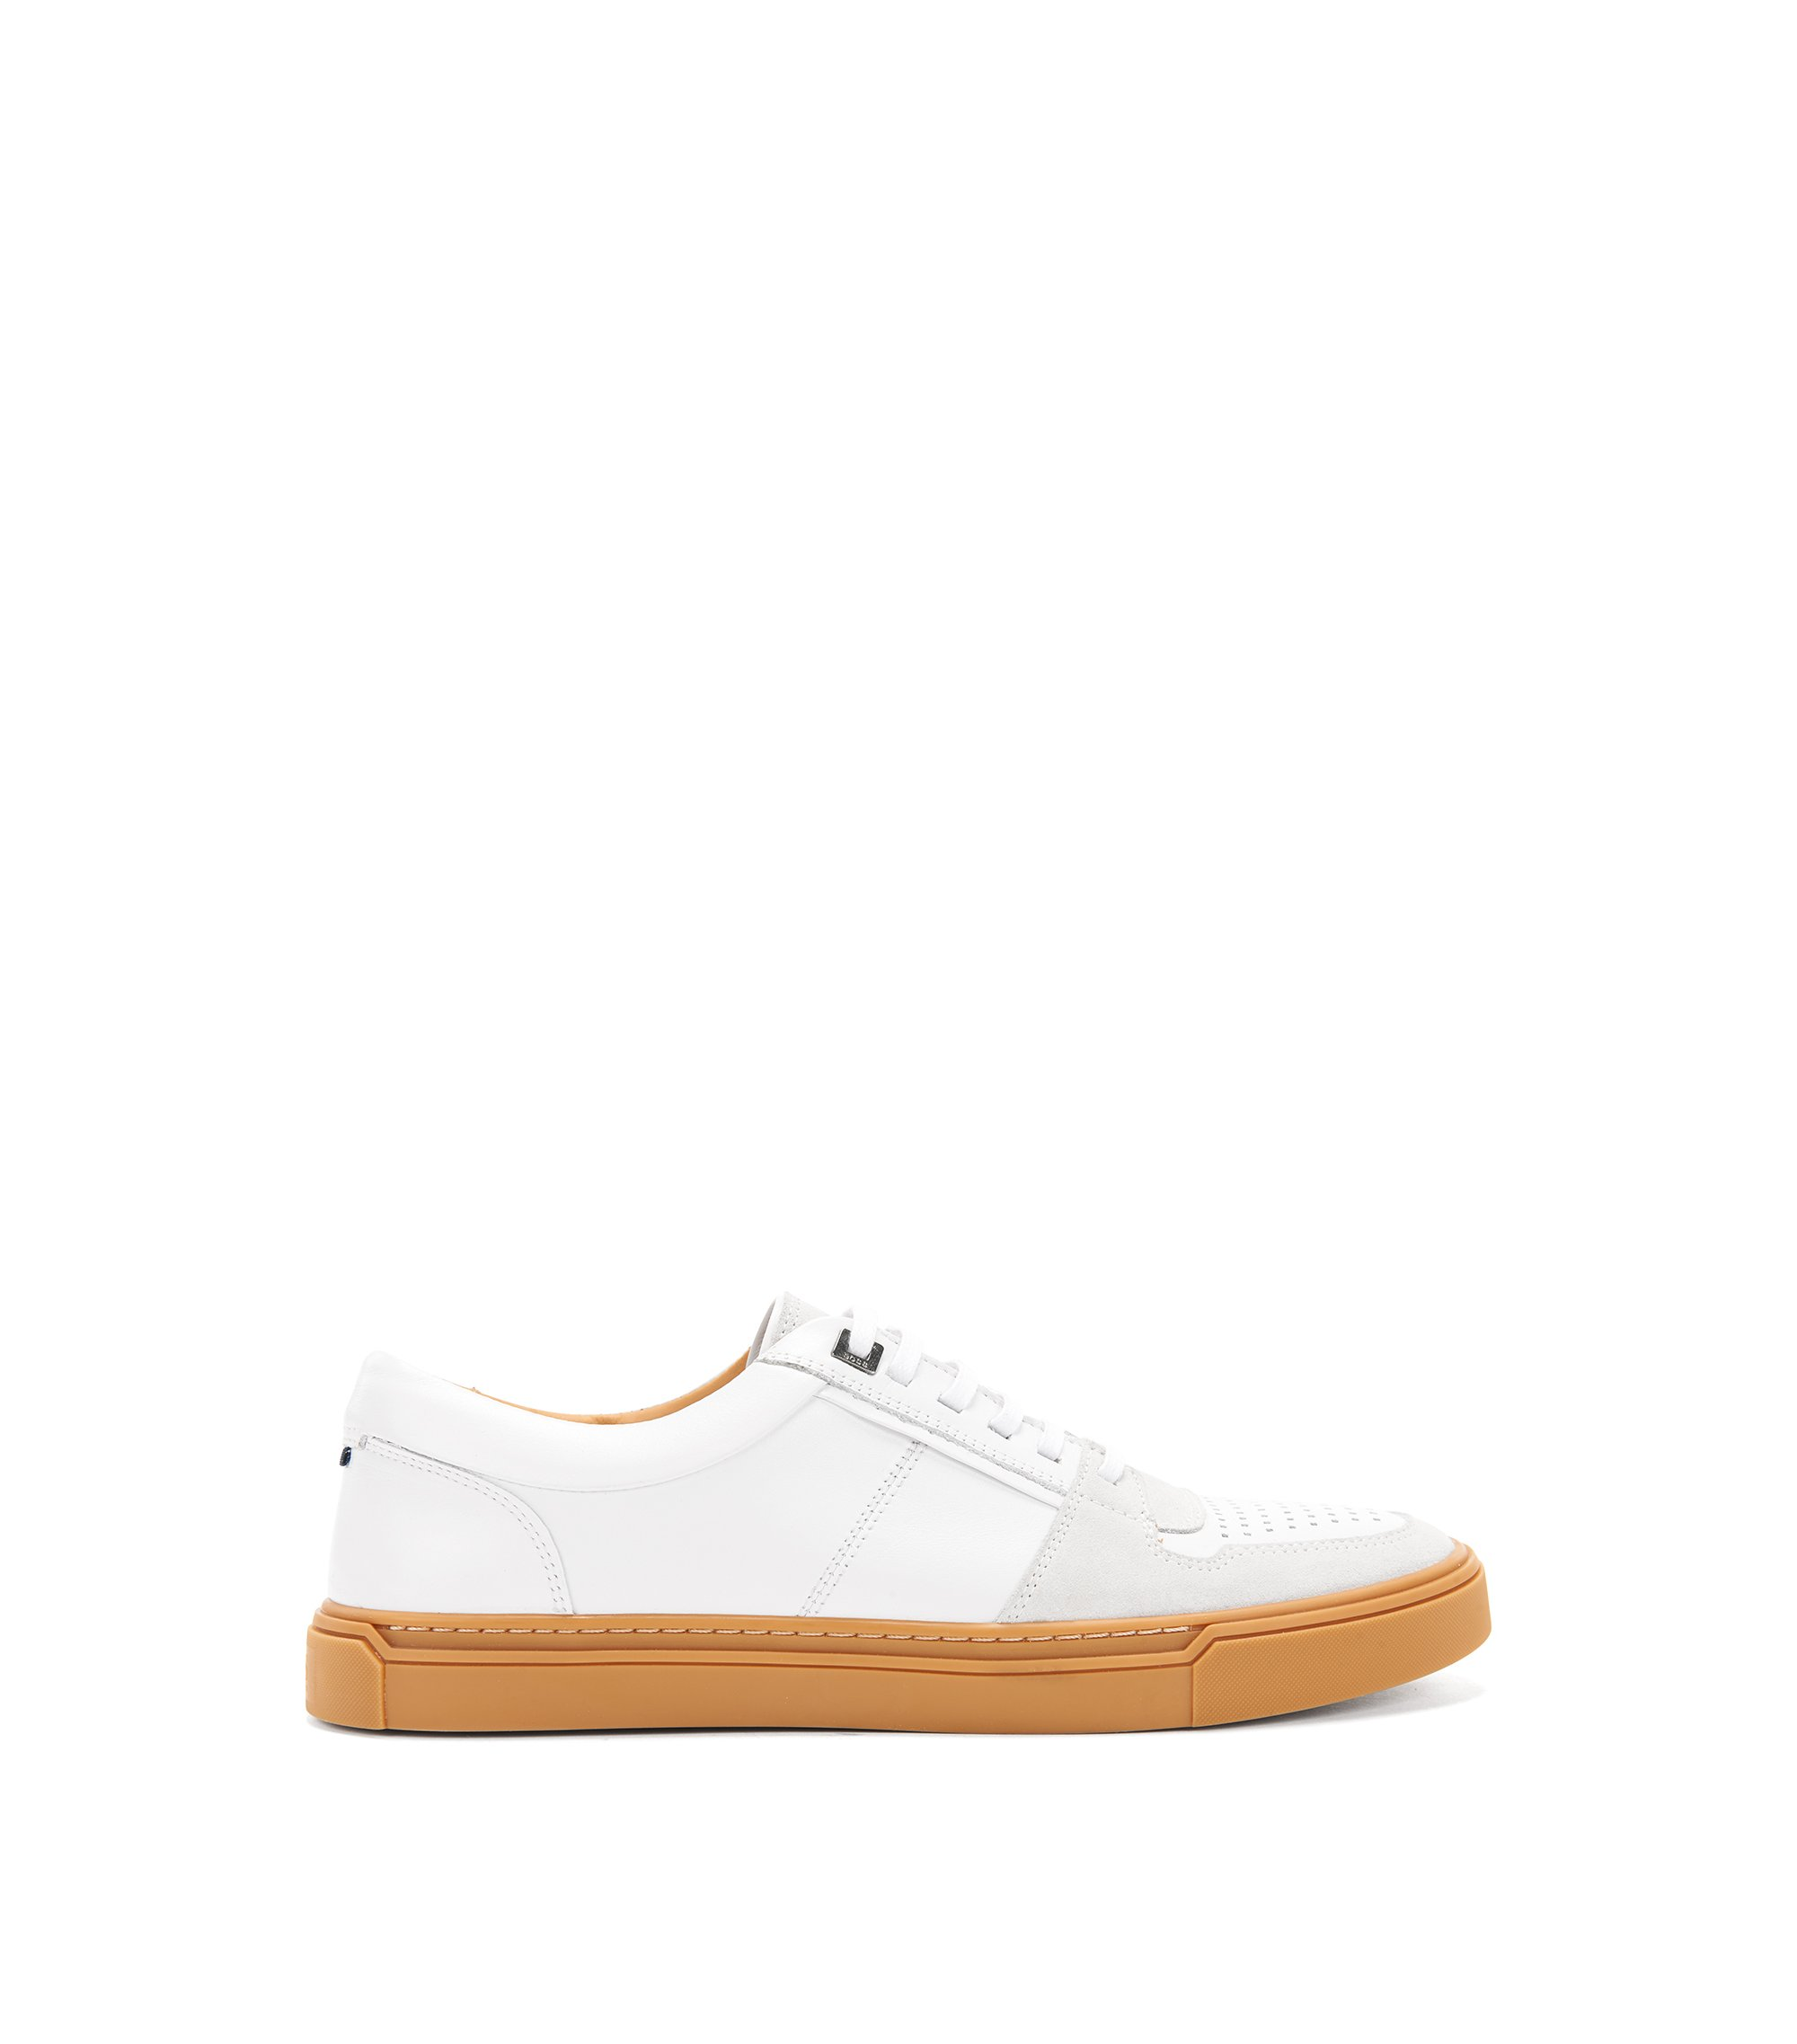 Italian calf-leather trainers with Strobel construction, White